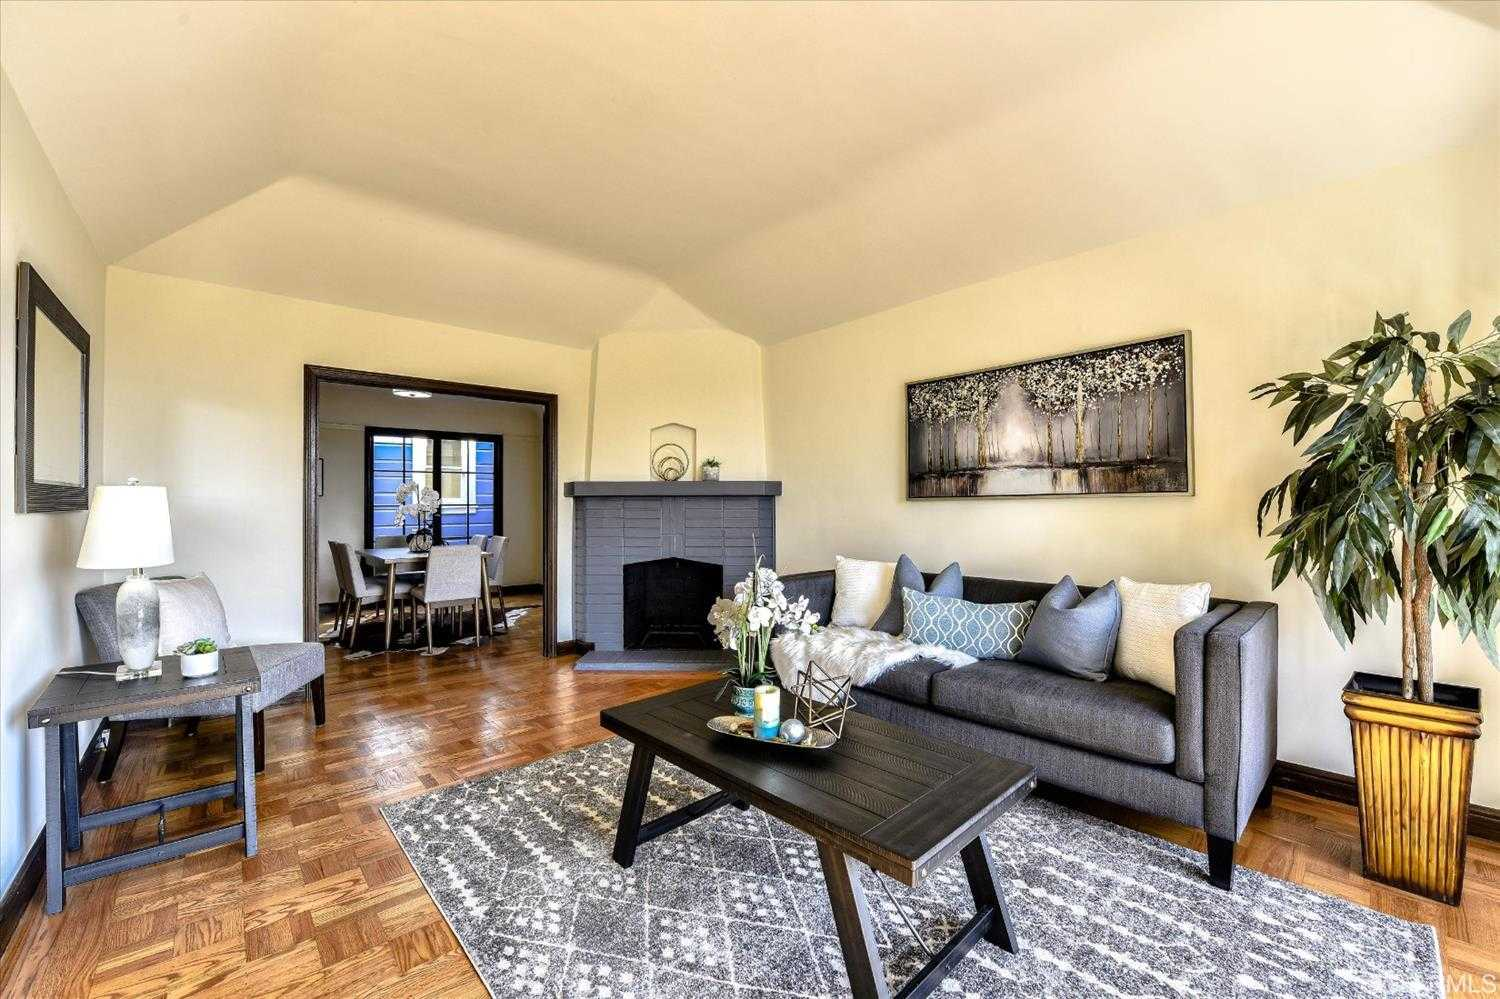 $1,095,000 - 2Br/1Ba -  for Sale in San Francisco